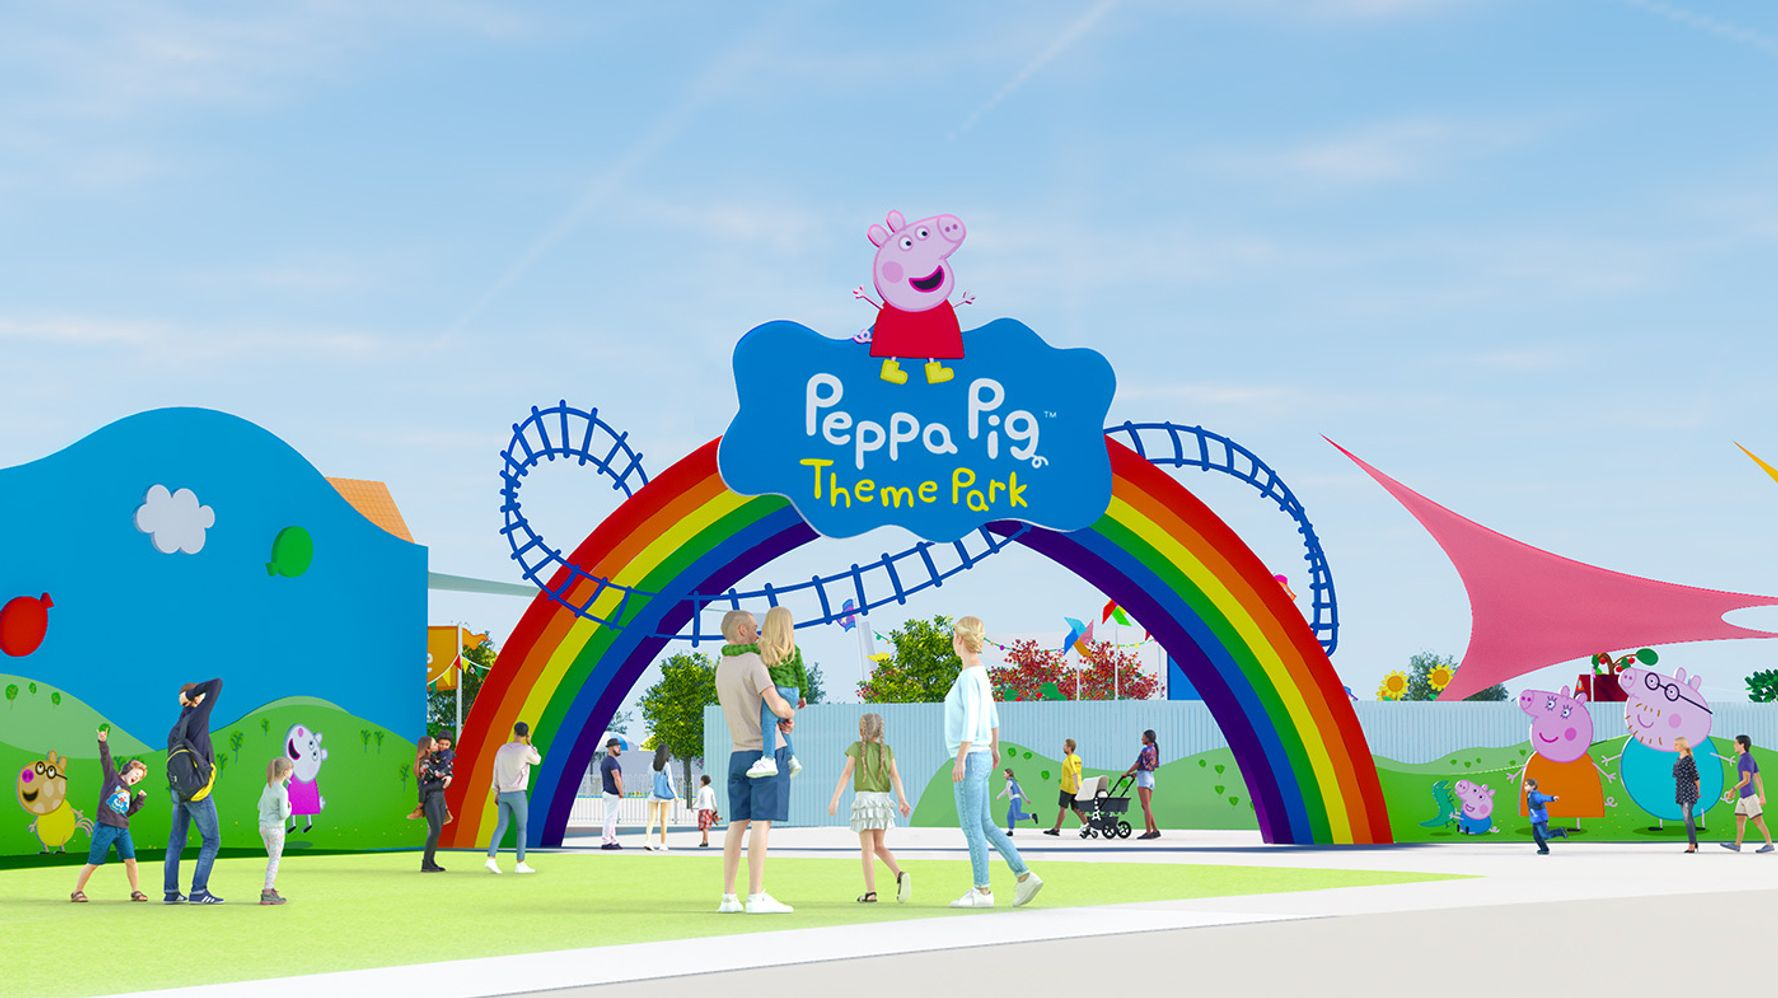 By 2022, A Peppa Pig Theme Park Will Exist